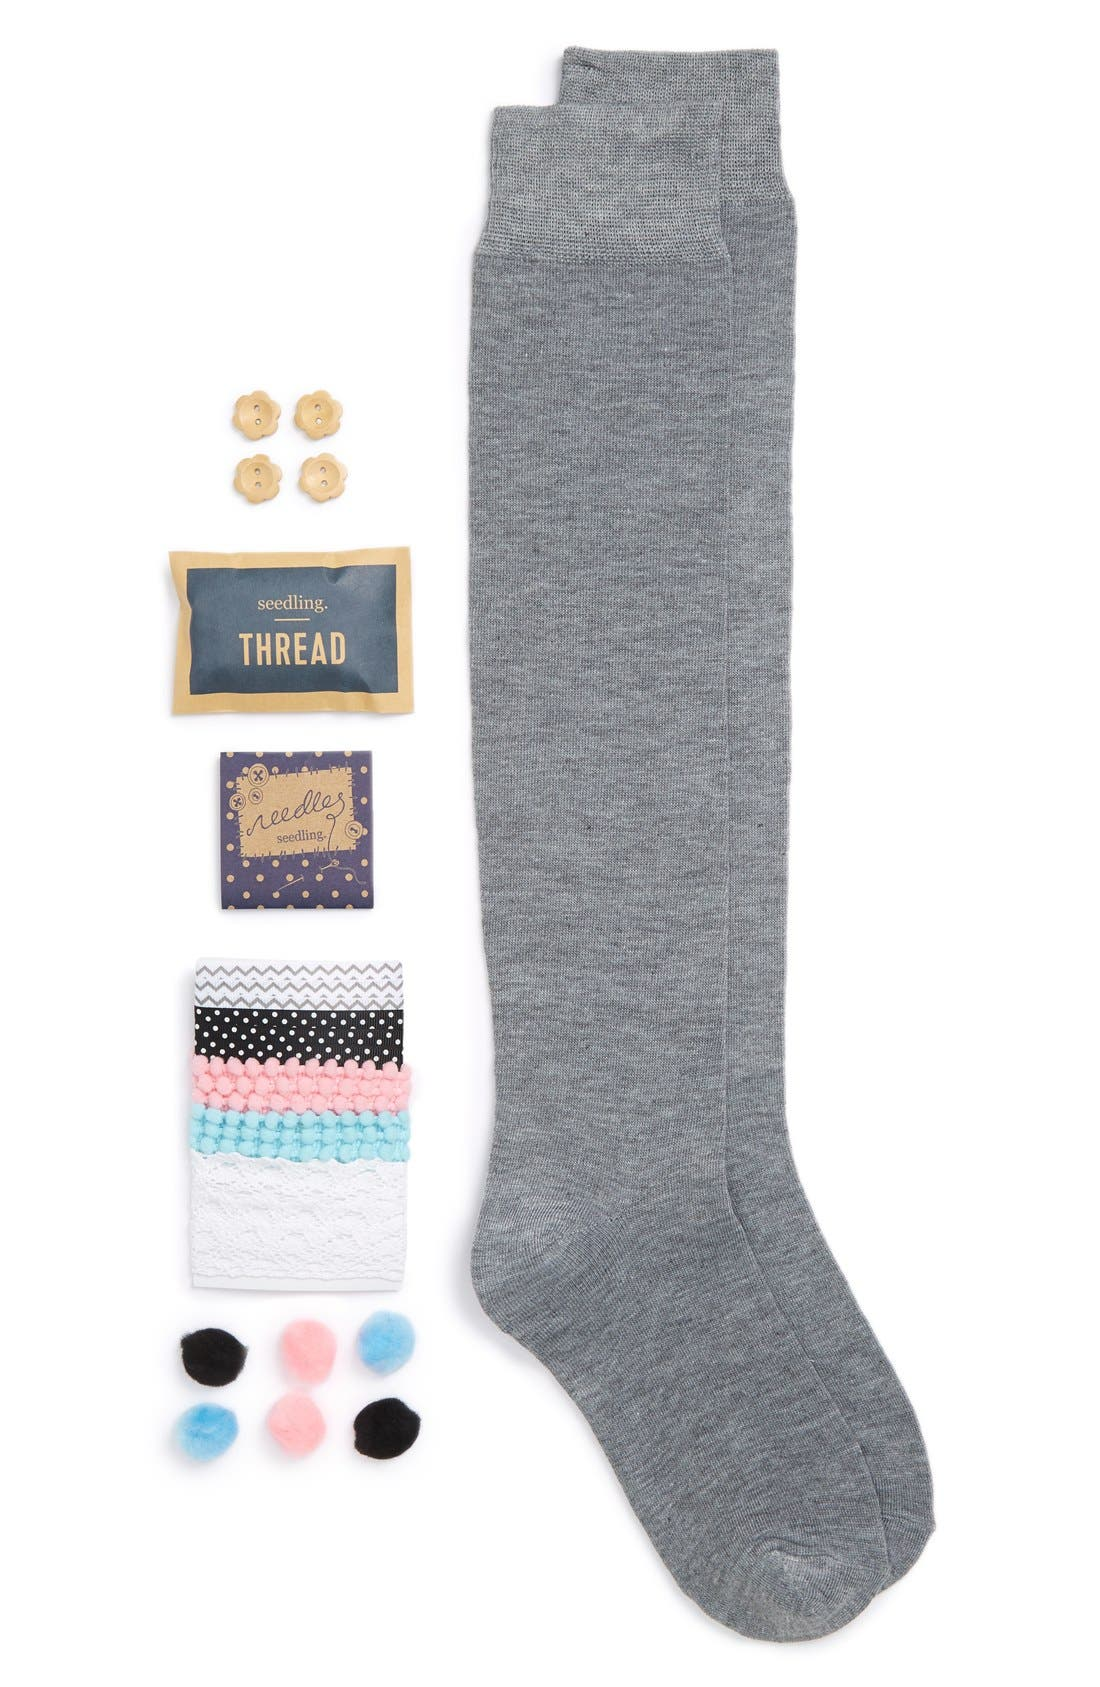 seedling 'Design Your Own Fashionista Socks' Craft Kit